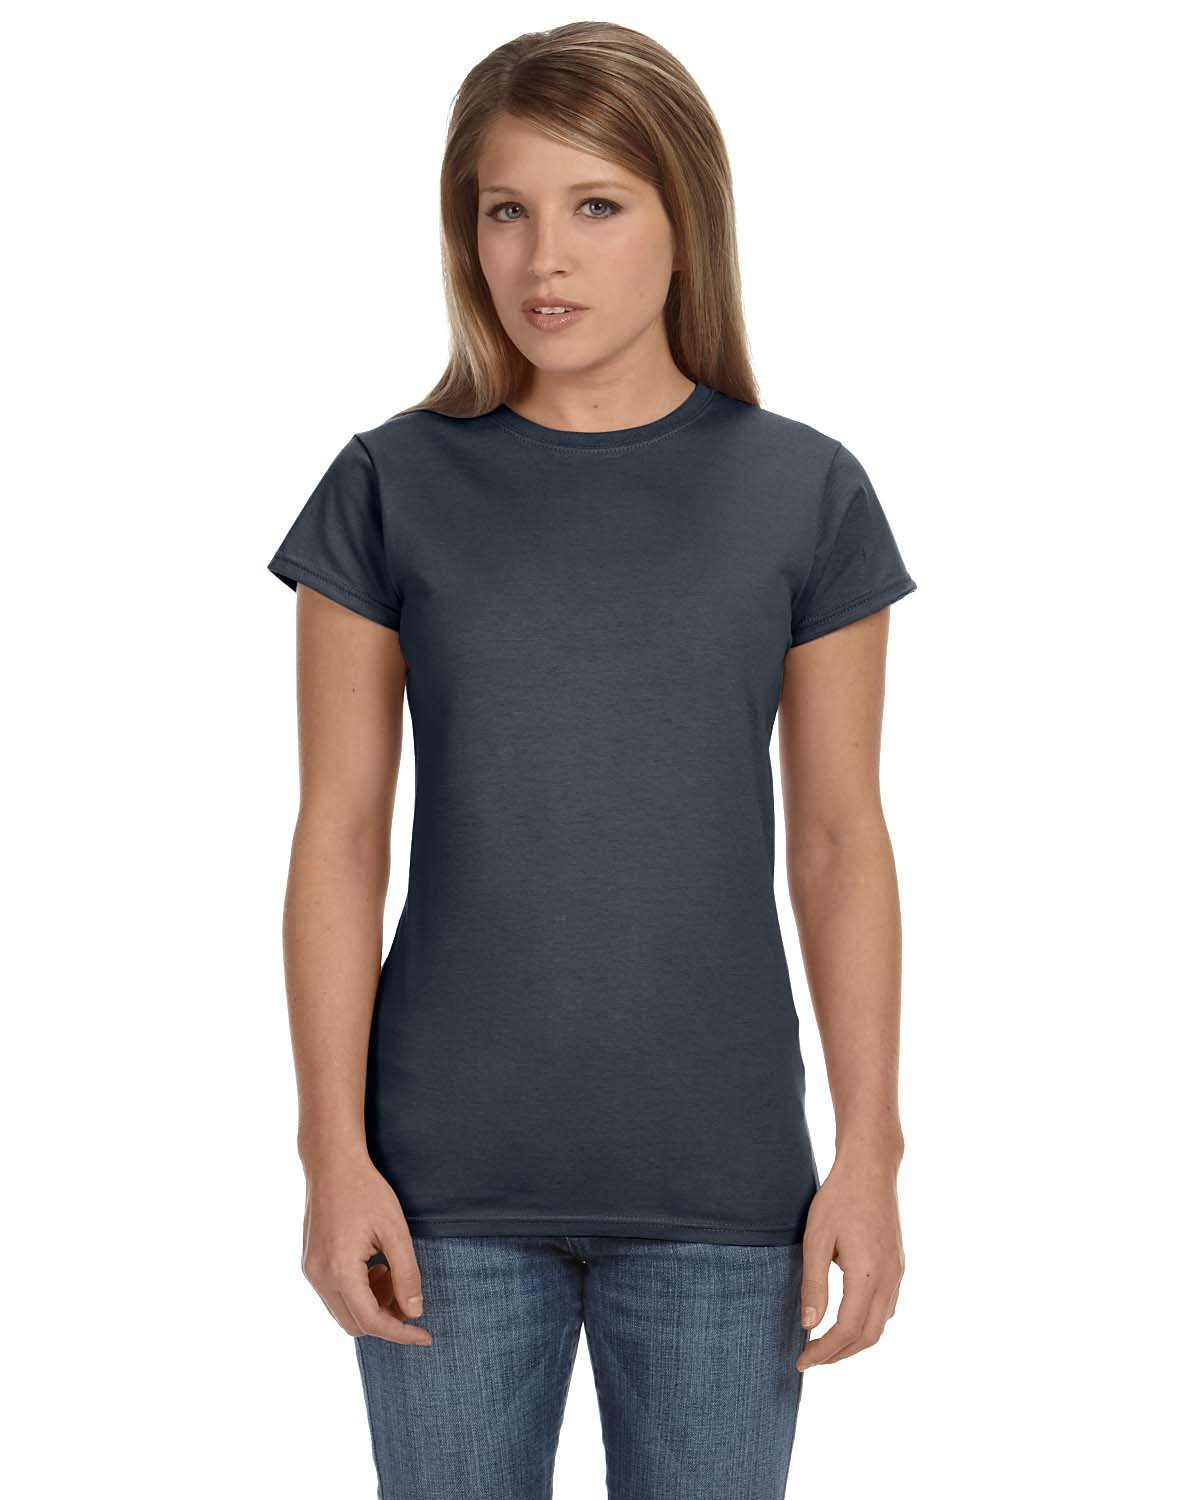 Gildan Ladies' Softstyle® 4.5 oz Fitted T-Shirt CHARCOAL